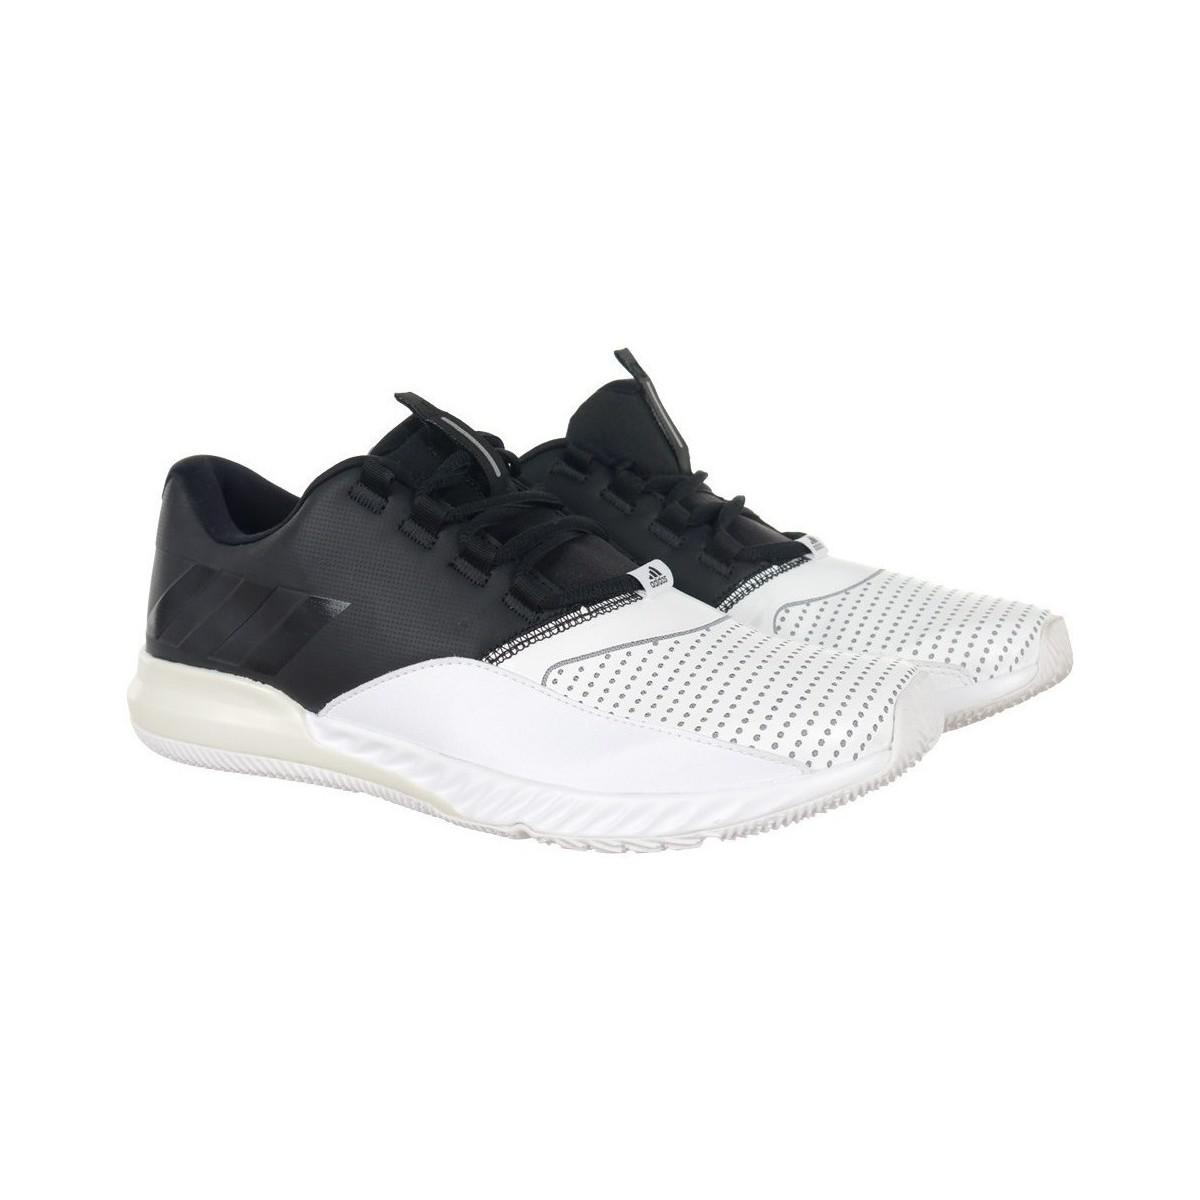 5208d45ccda95 adidas Crazymove Bounce M Men s Running Trainers In Black in Black ...